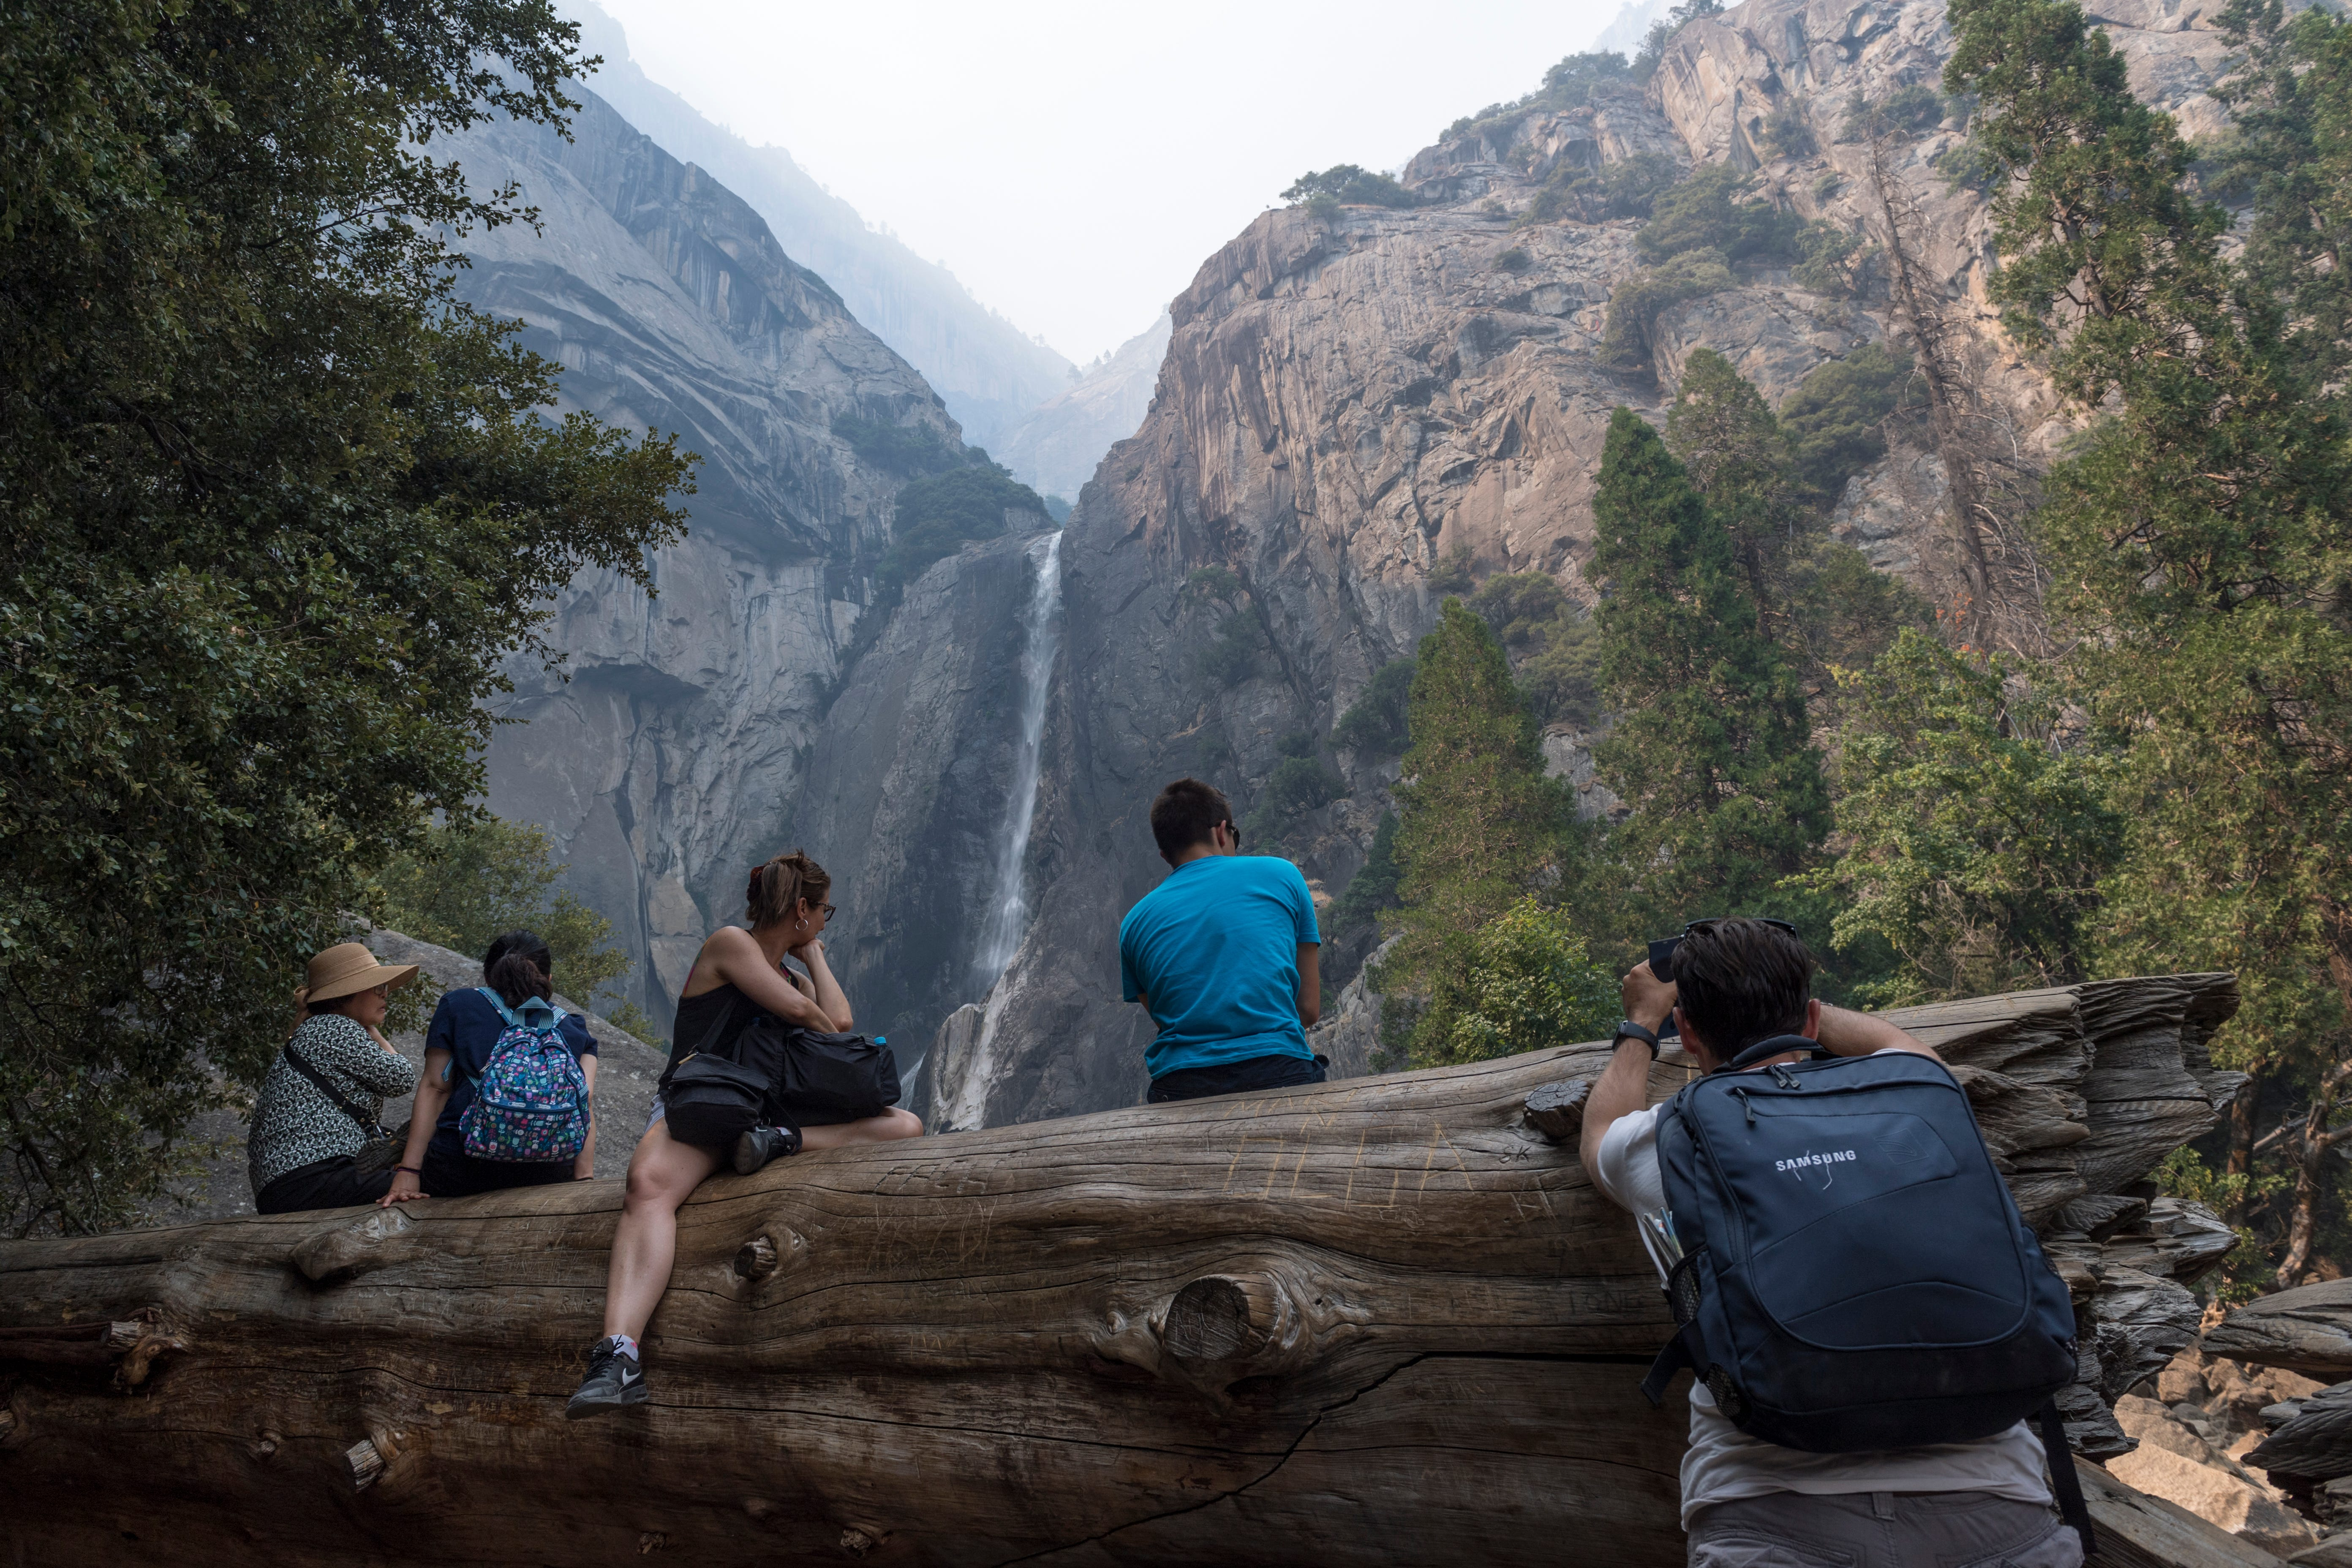 Heart of Yosemite National Park, closed for 2½ weeks because of wildfire, to reopen Tuesday